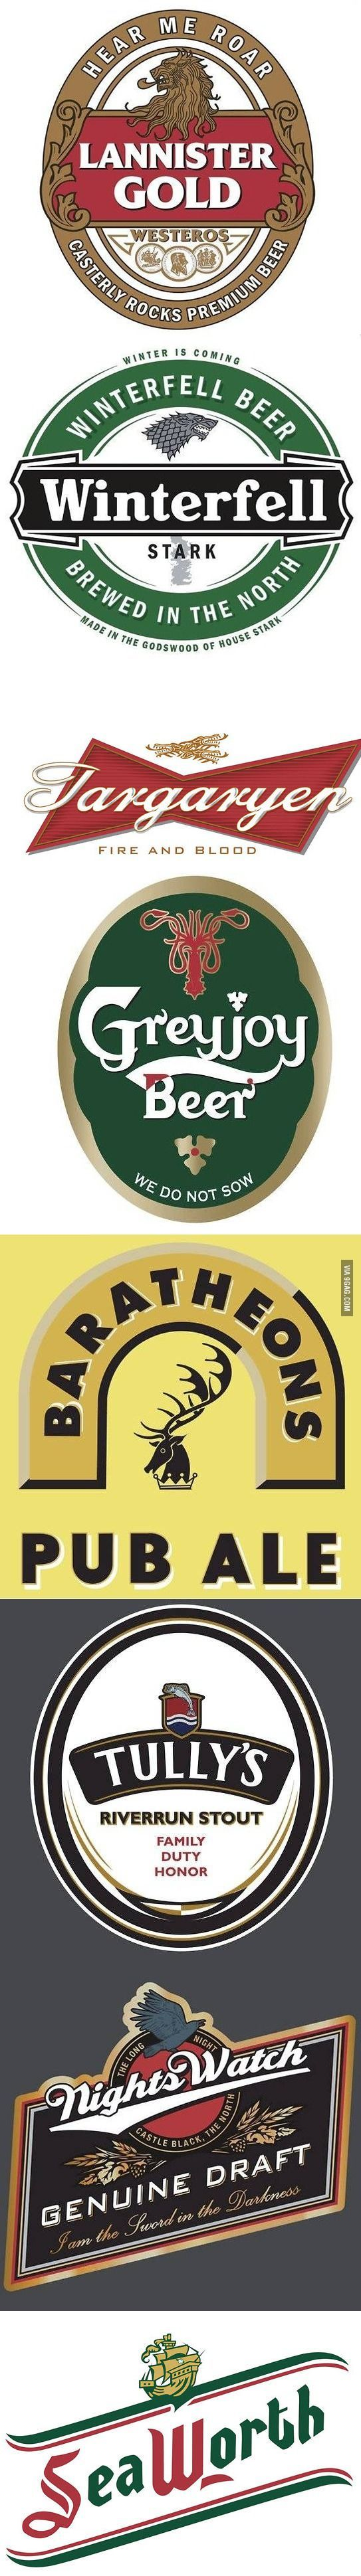 PRINTABLES: Game of Thrones beverage labels..  Medieval Halloween Game of Thrones Gathering Party Theme & Decorating Ideas Don't forget to come and see us at http://bakedcomfortfood.com!